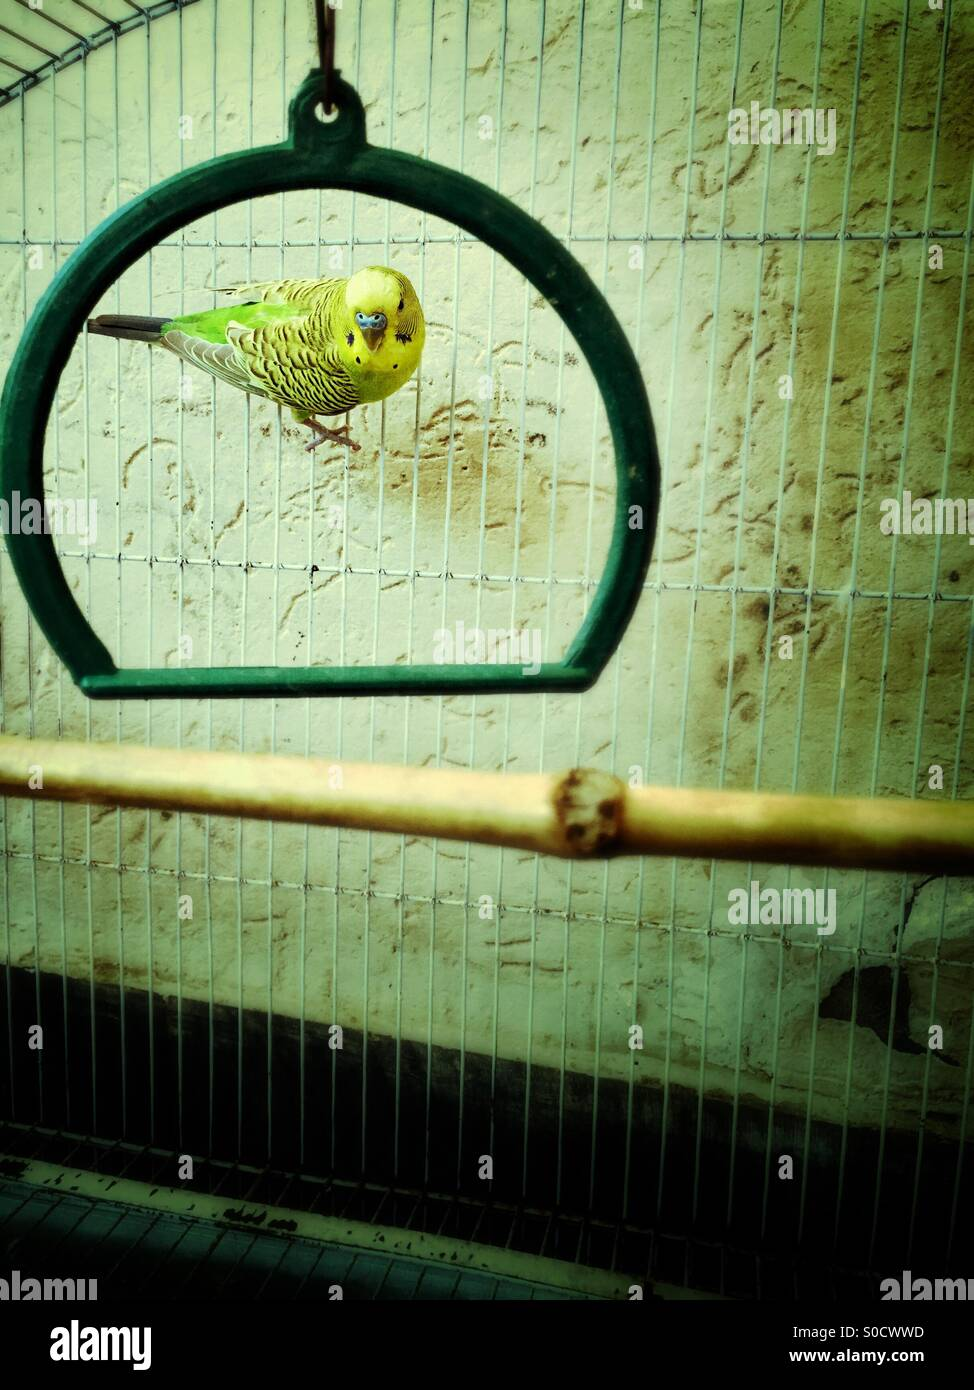 Yellow and green lovebird inside a cage - Stock Image